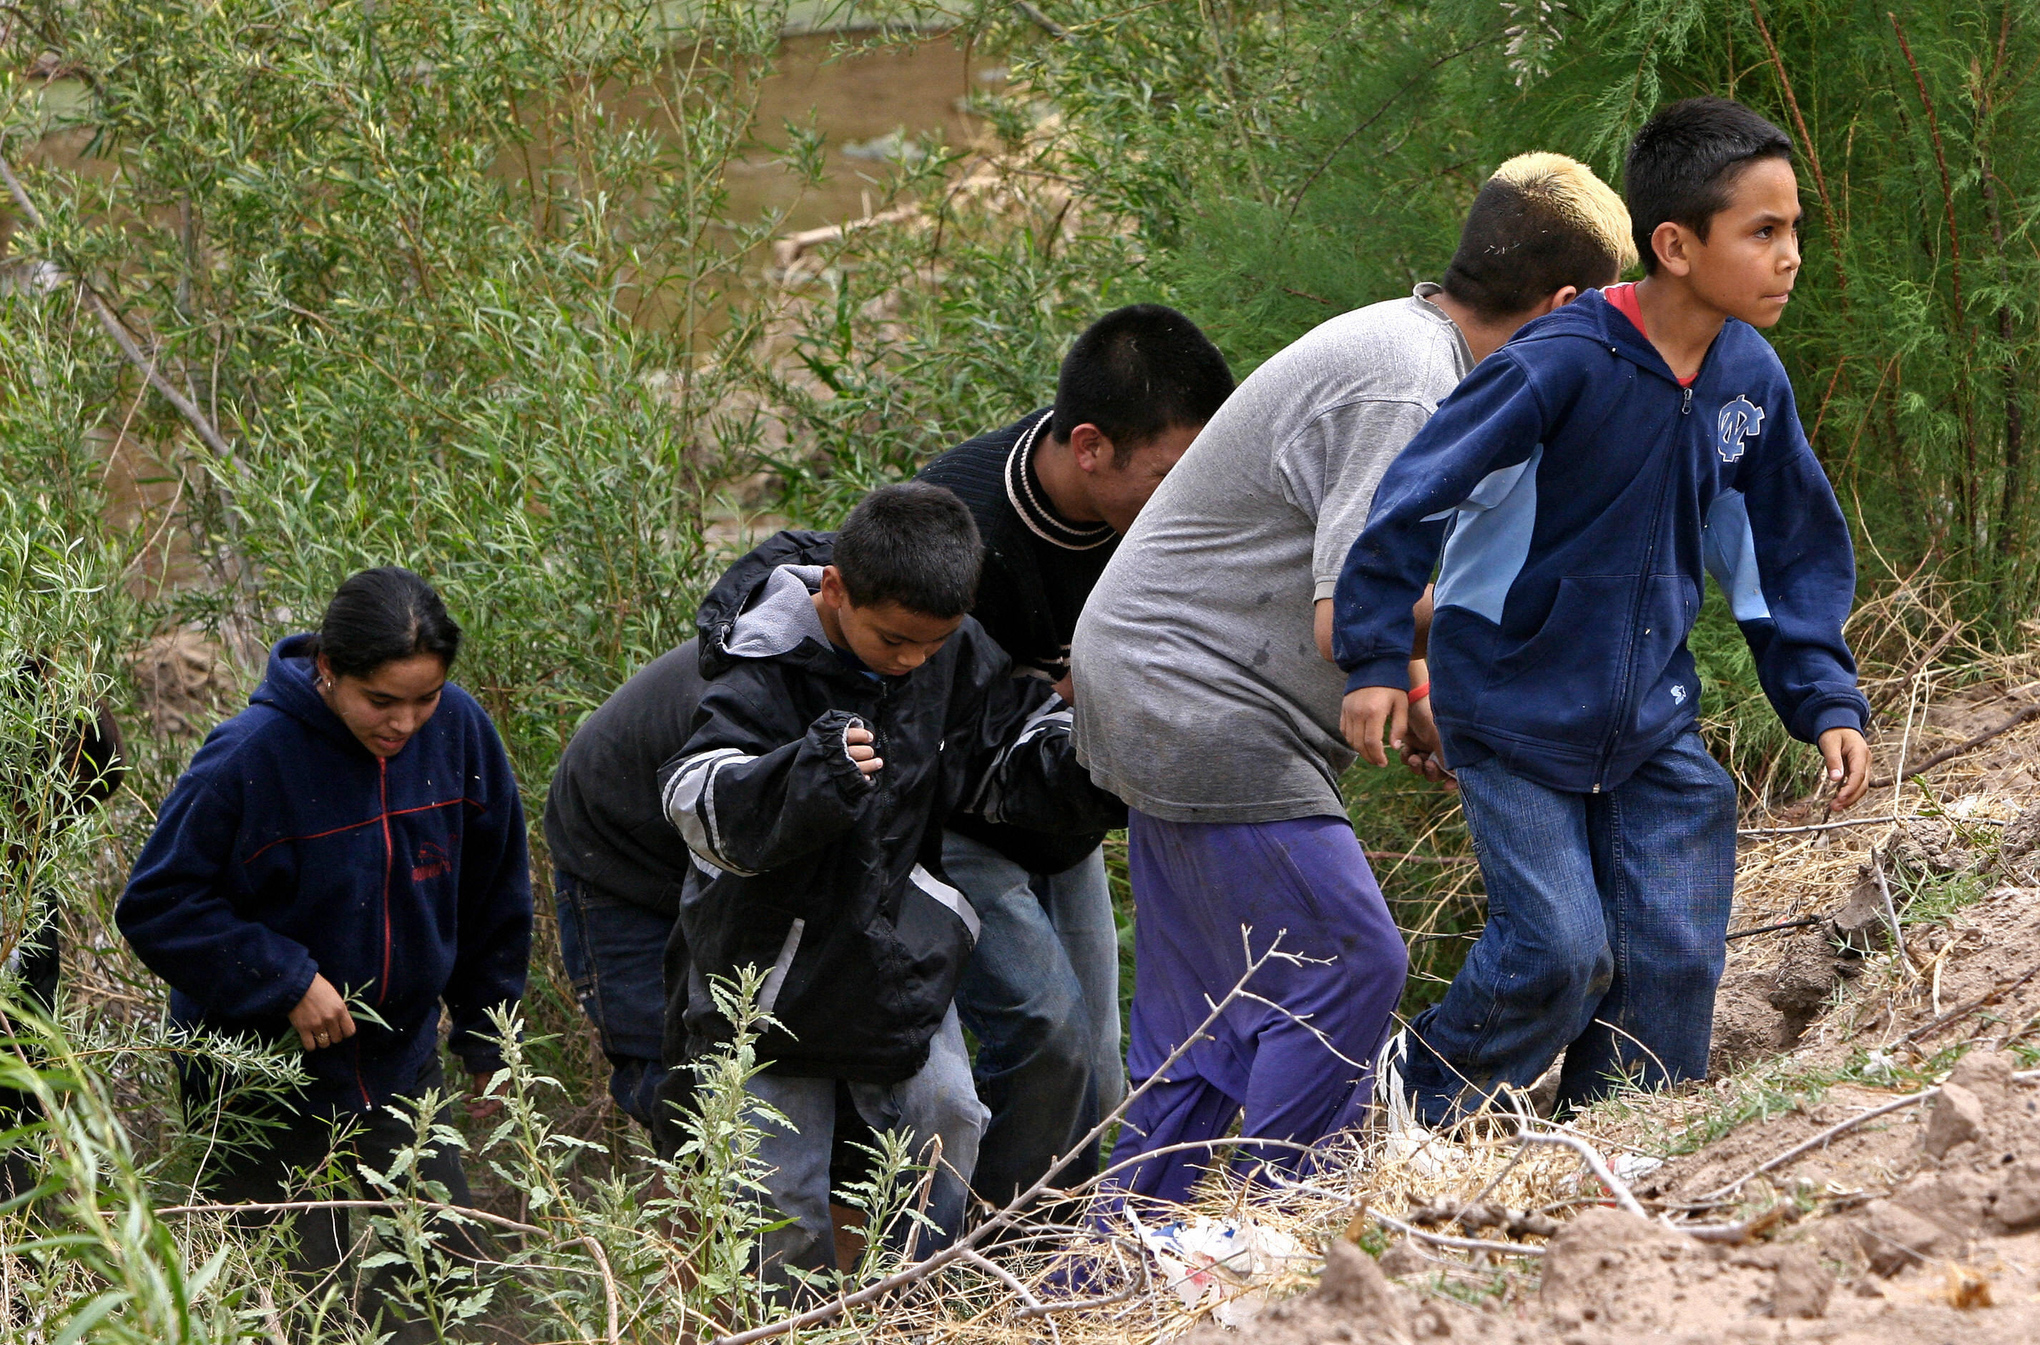 facts that help explain america s child migrant crisis vox 77056340